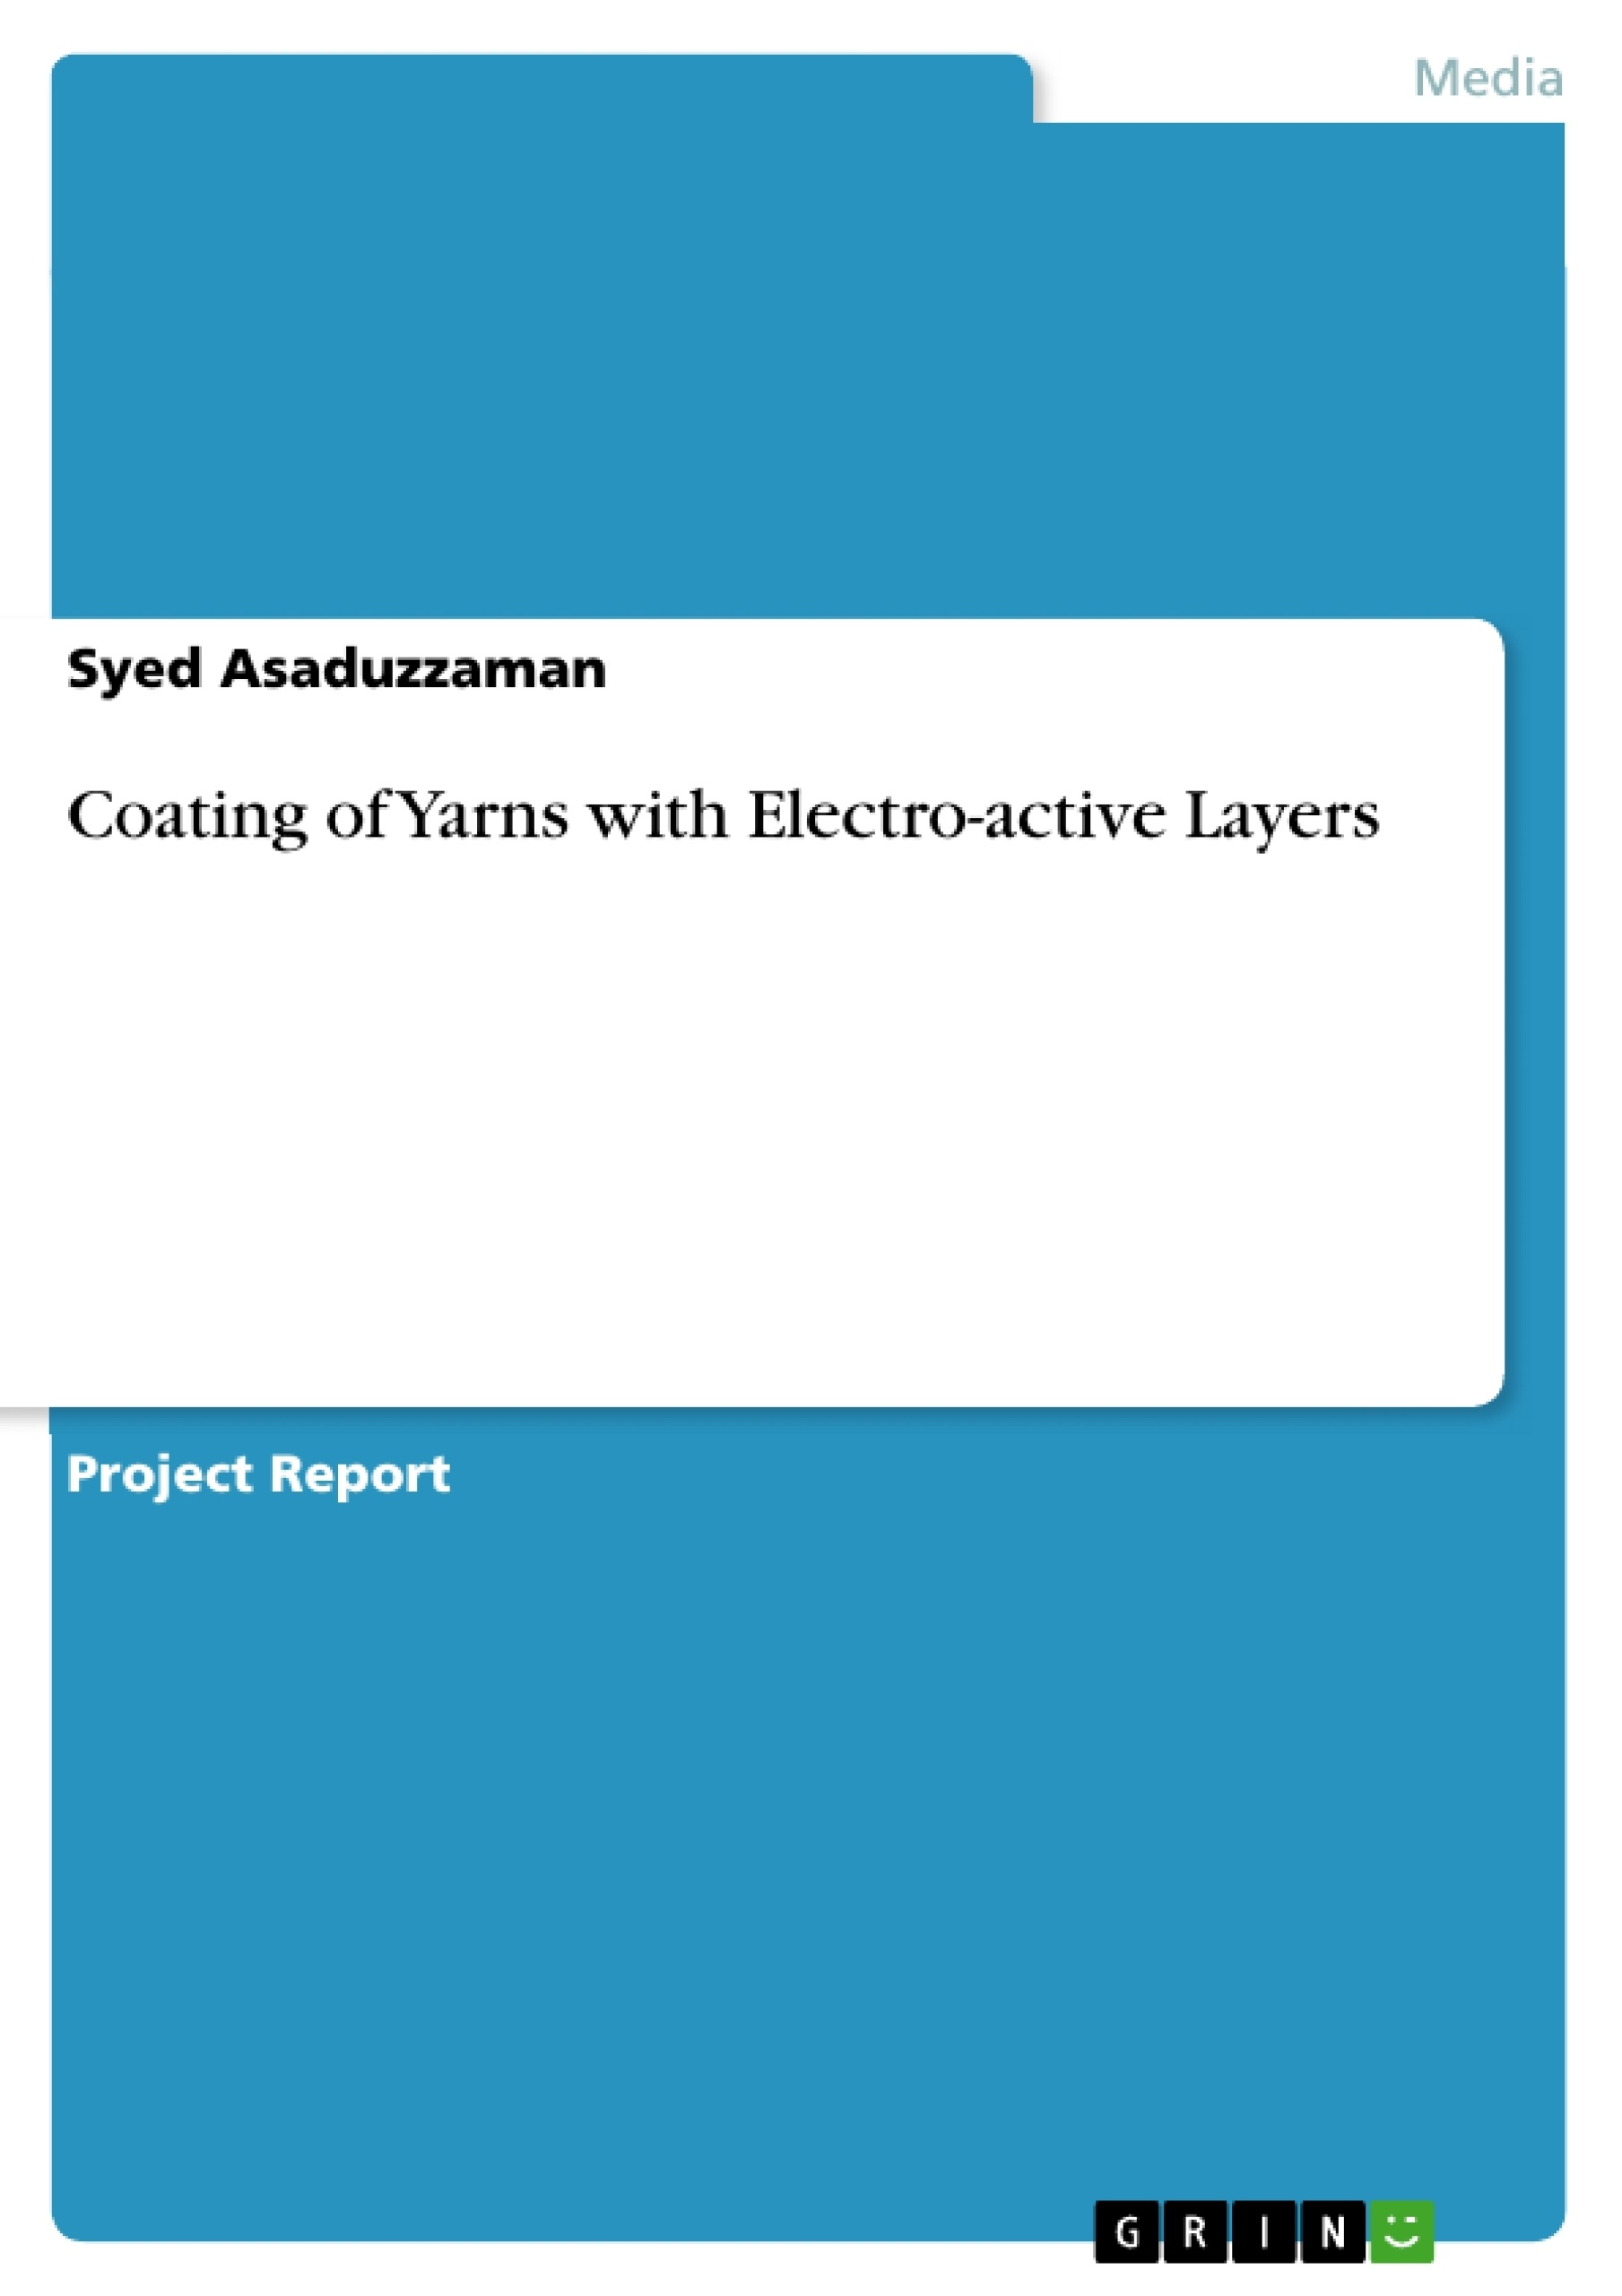 Title: Coating of Yarns with Electro-active Layers